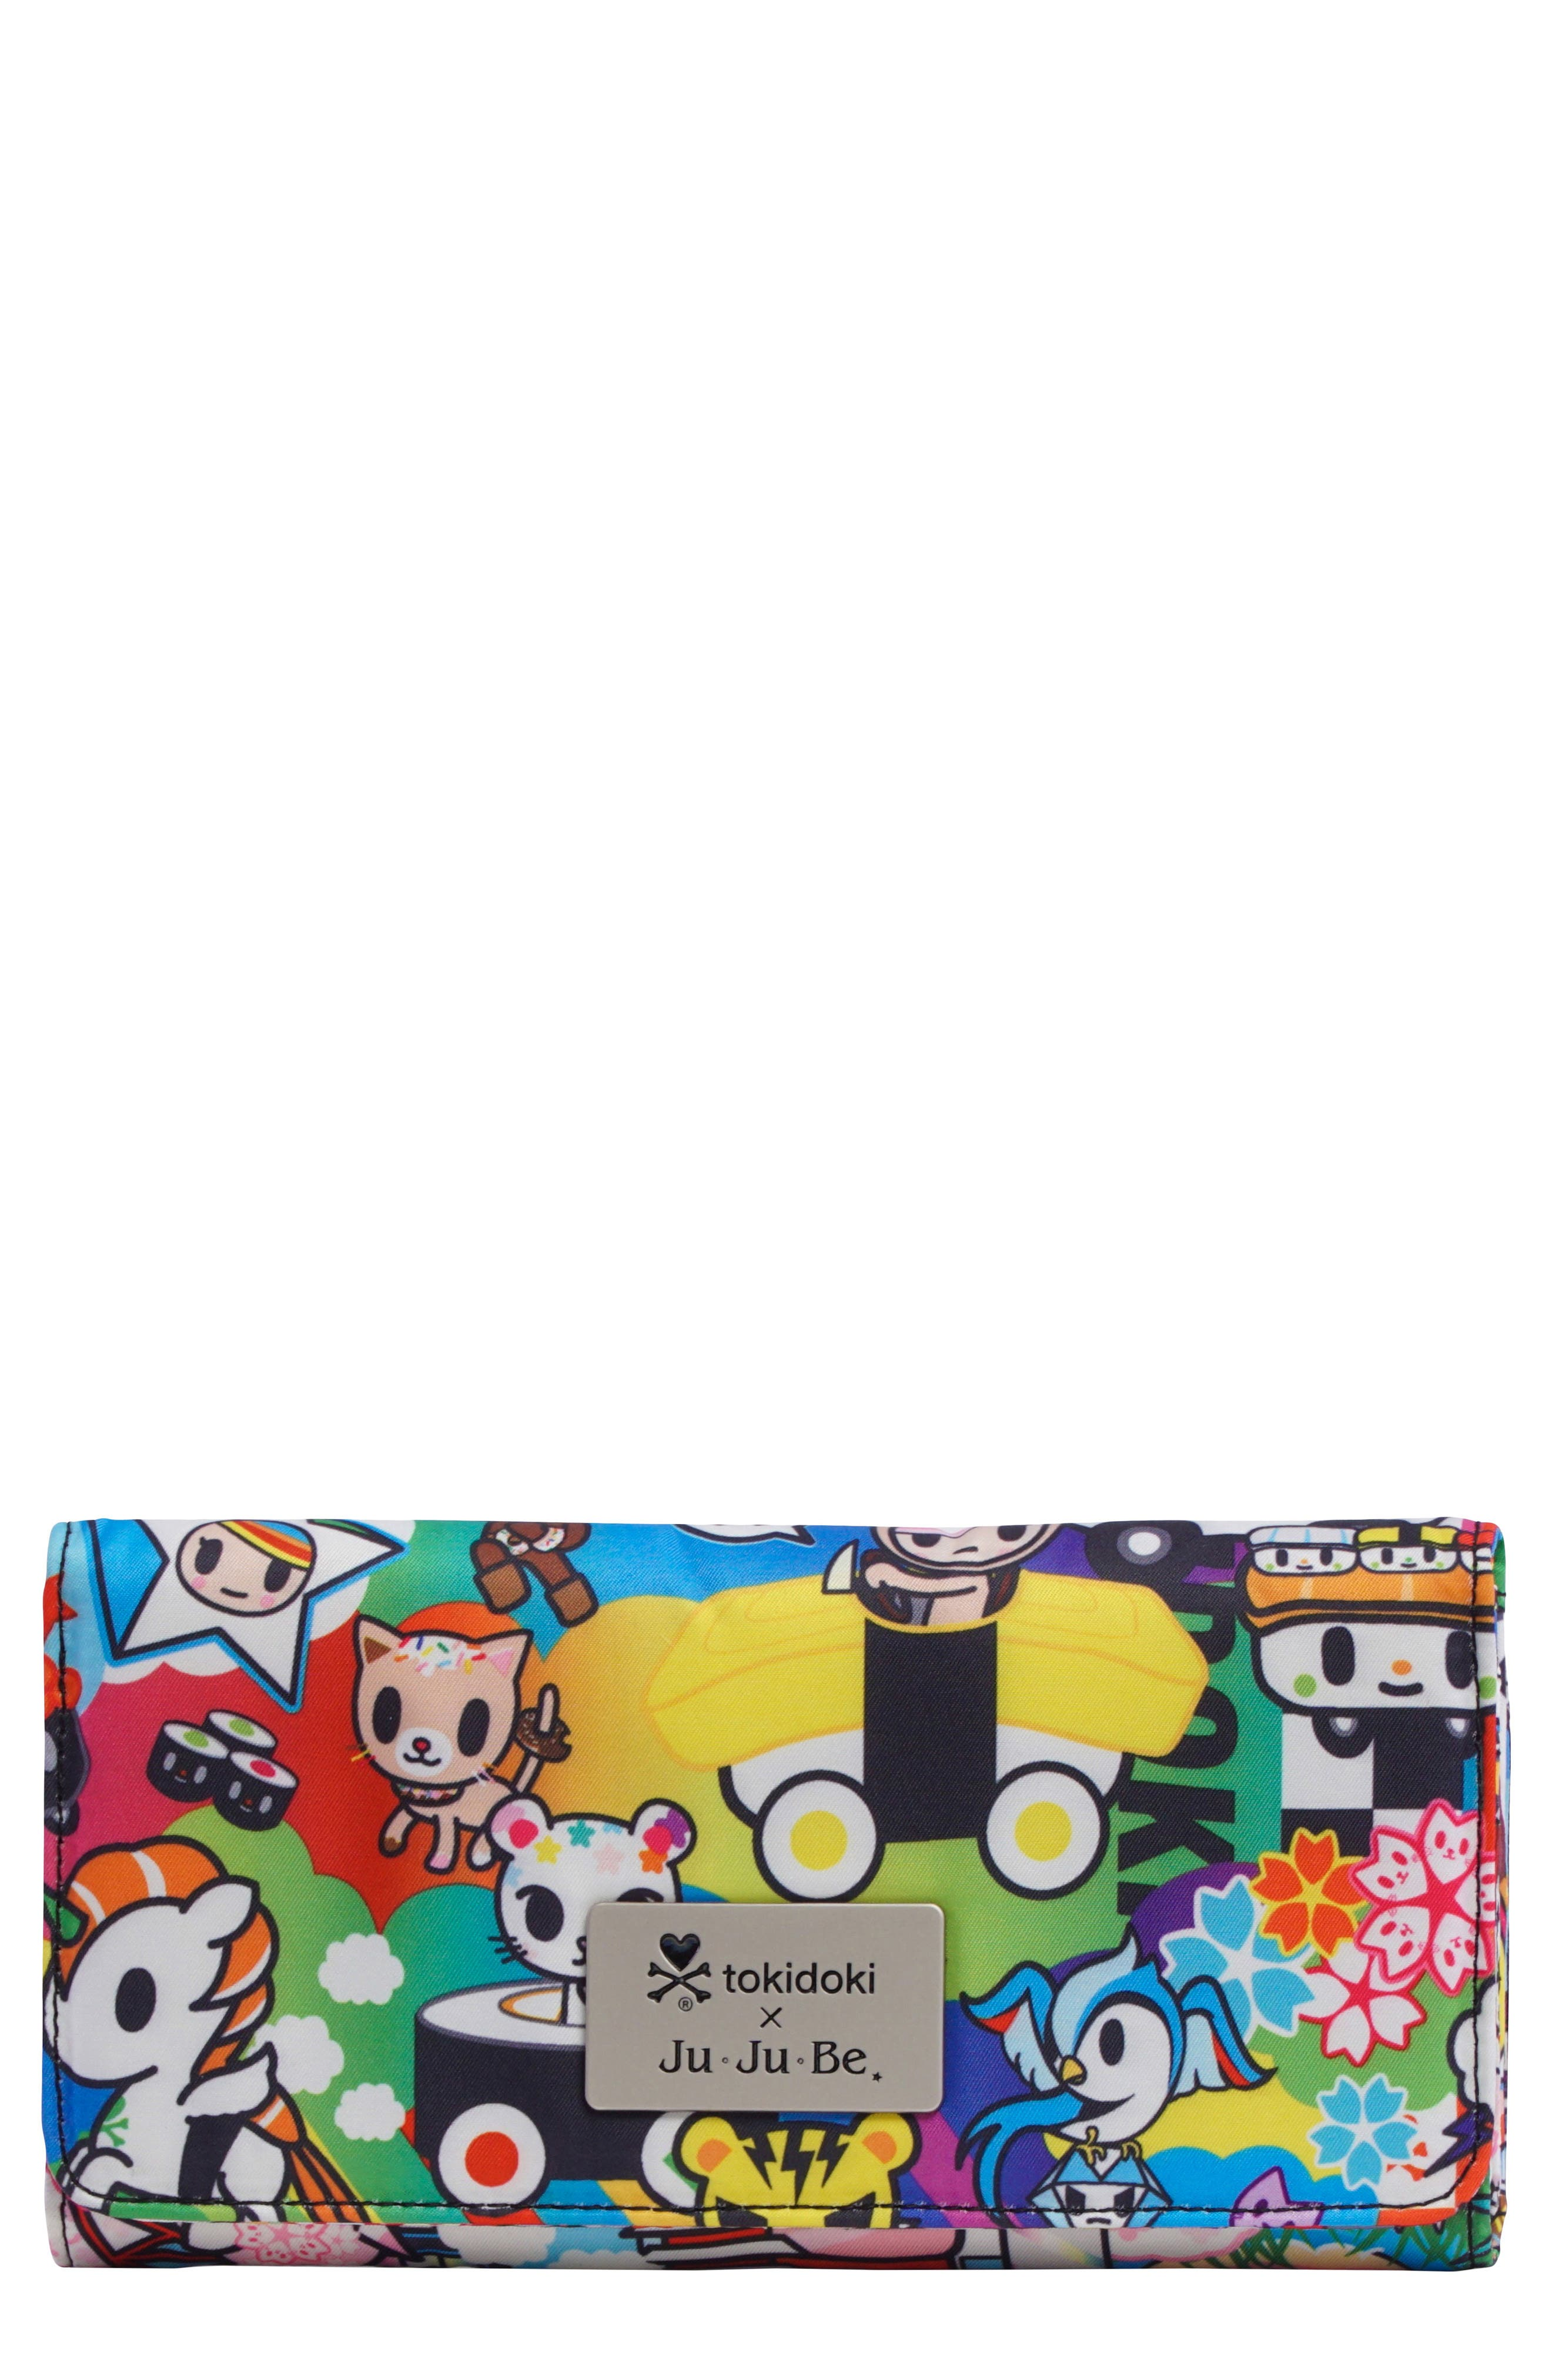 x tokidoki Be Rich Trifold Clutch Wallet,                             Main thumbnail 1, color,                             SUSHI CARS